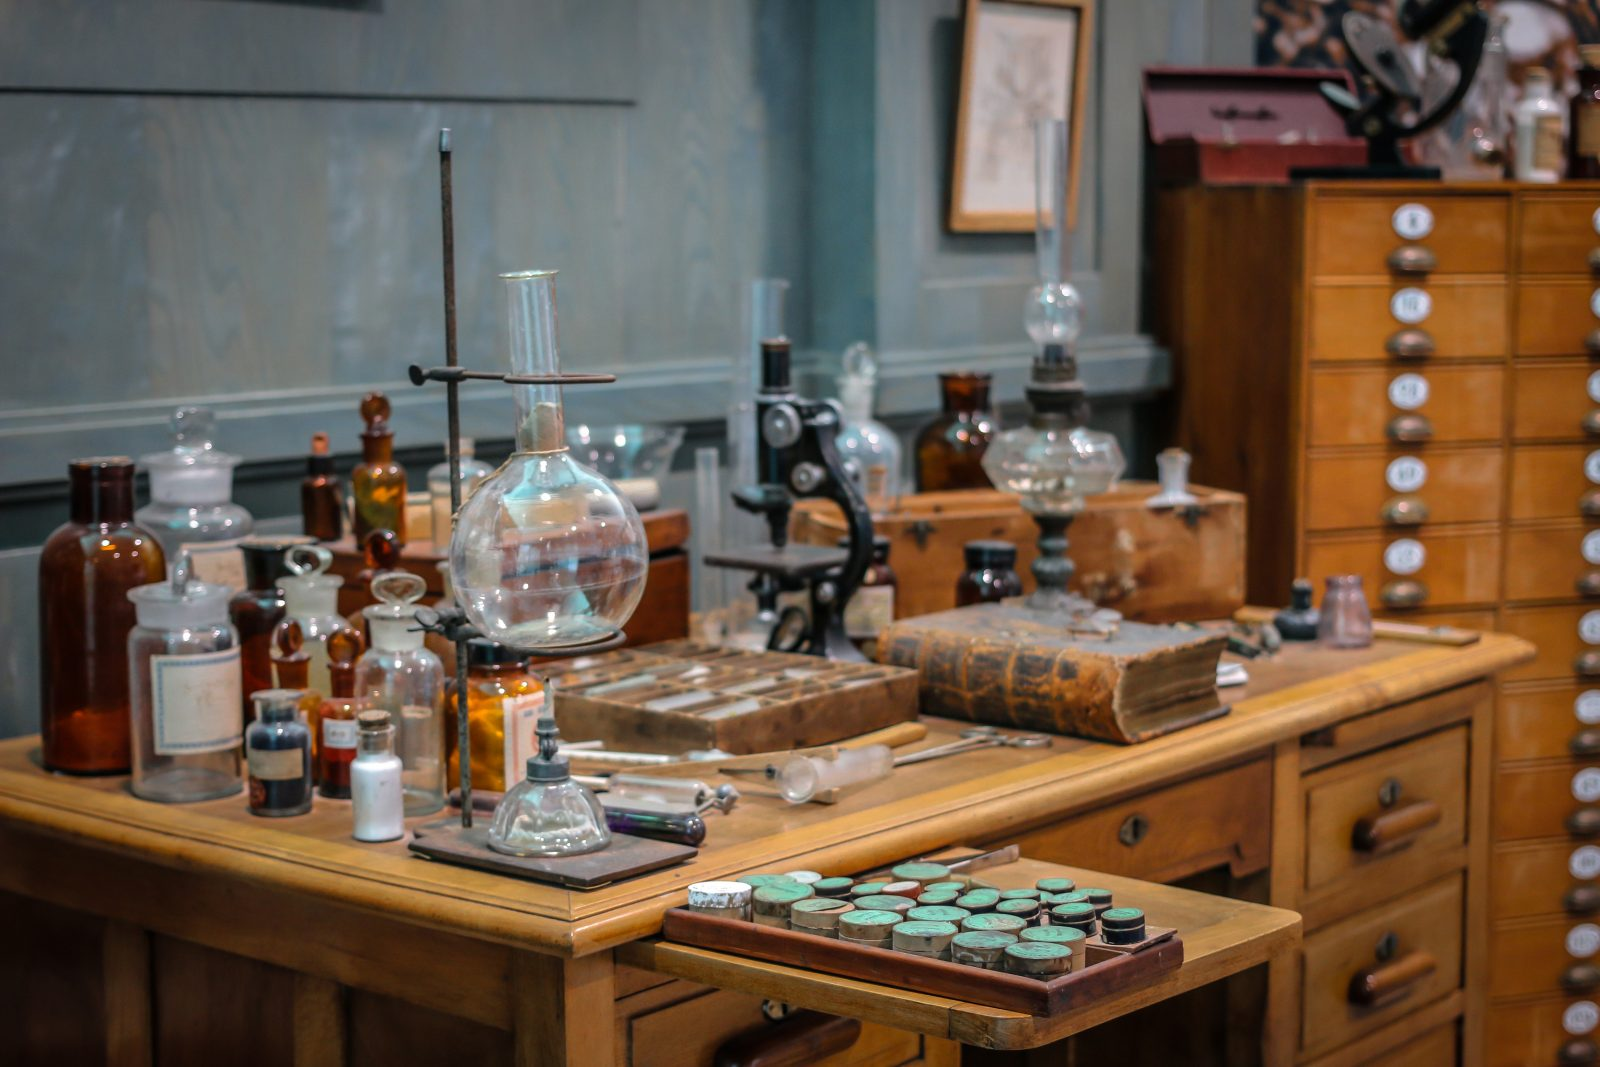 Old science lab with chemical reagents and burner